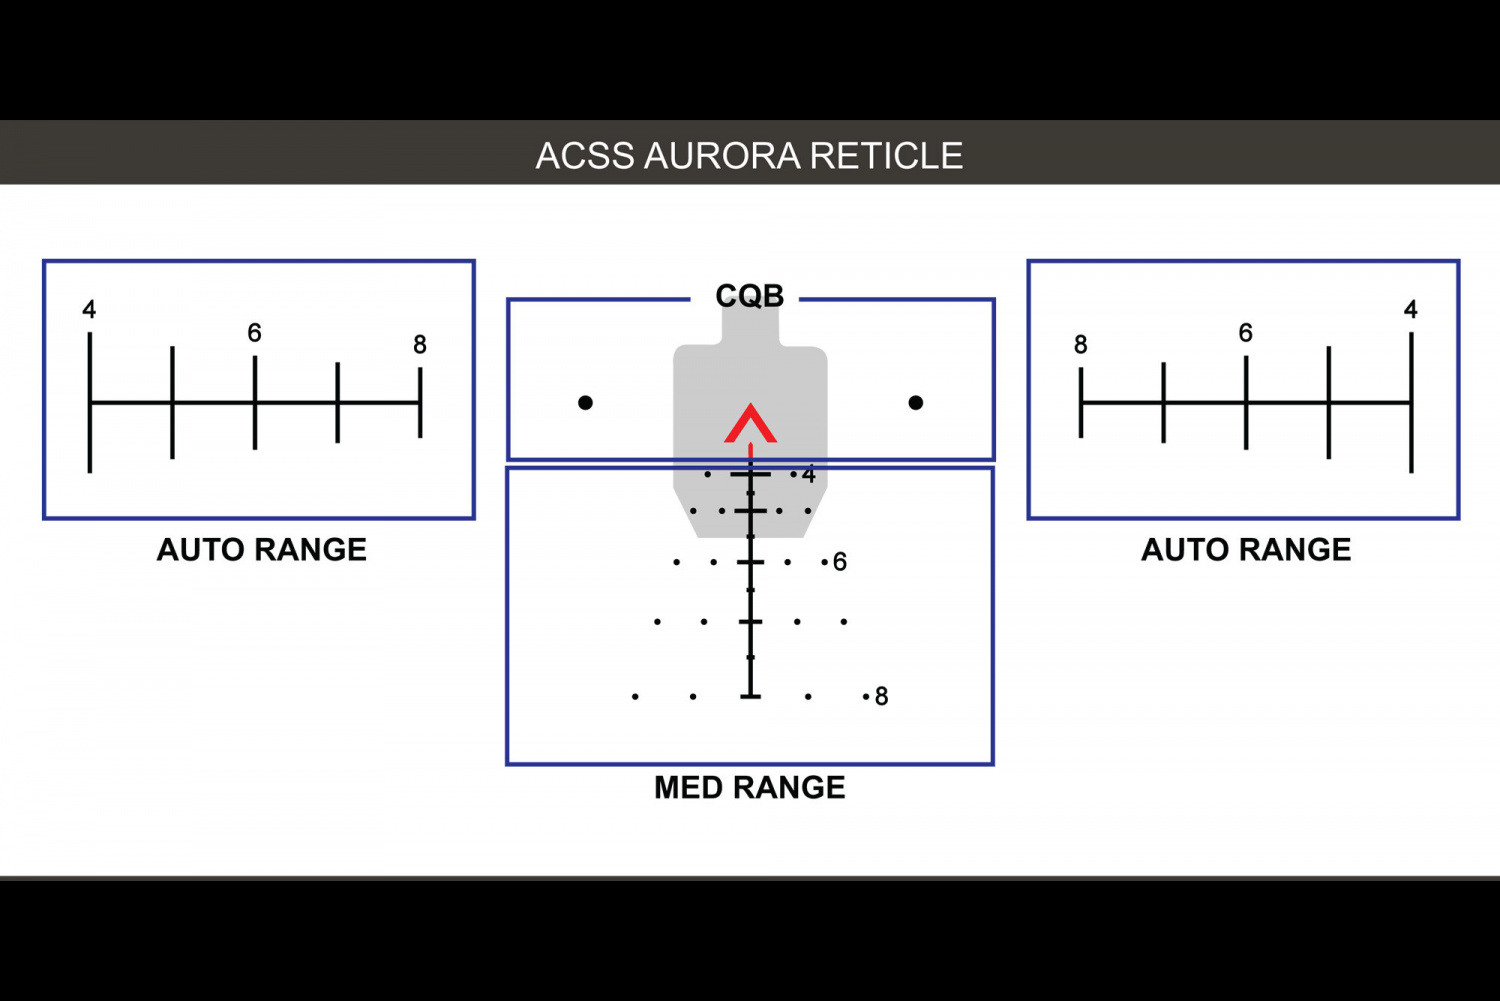 Primary Arms' own ACSS reticle system has gained an ardent following over the years.